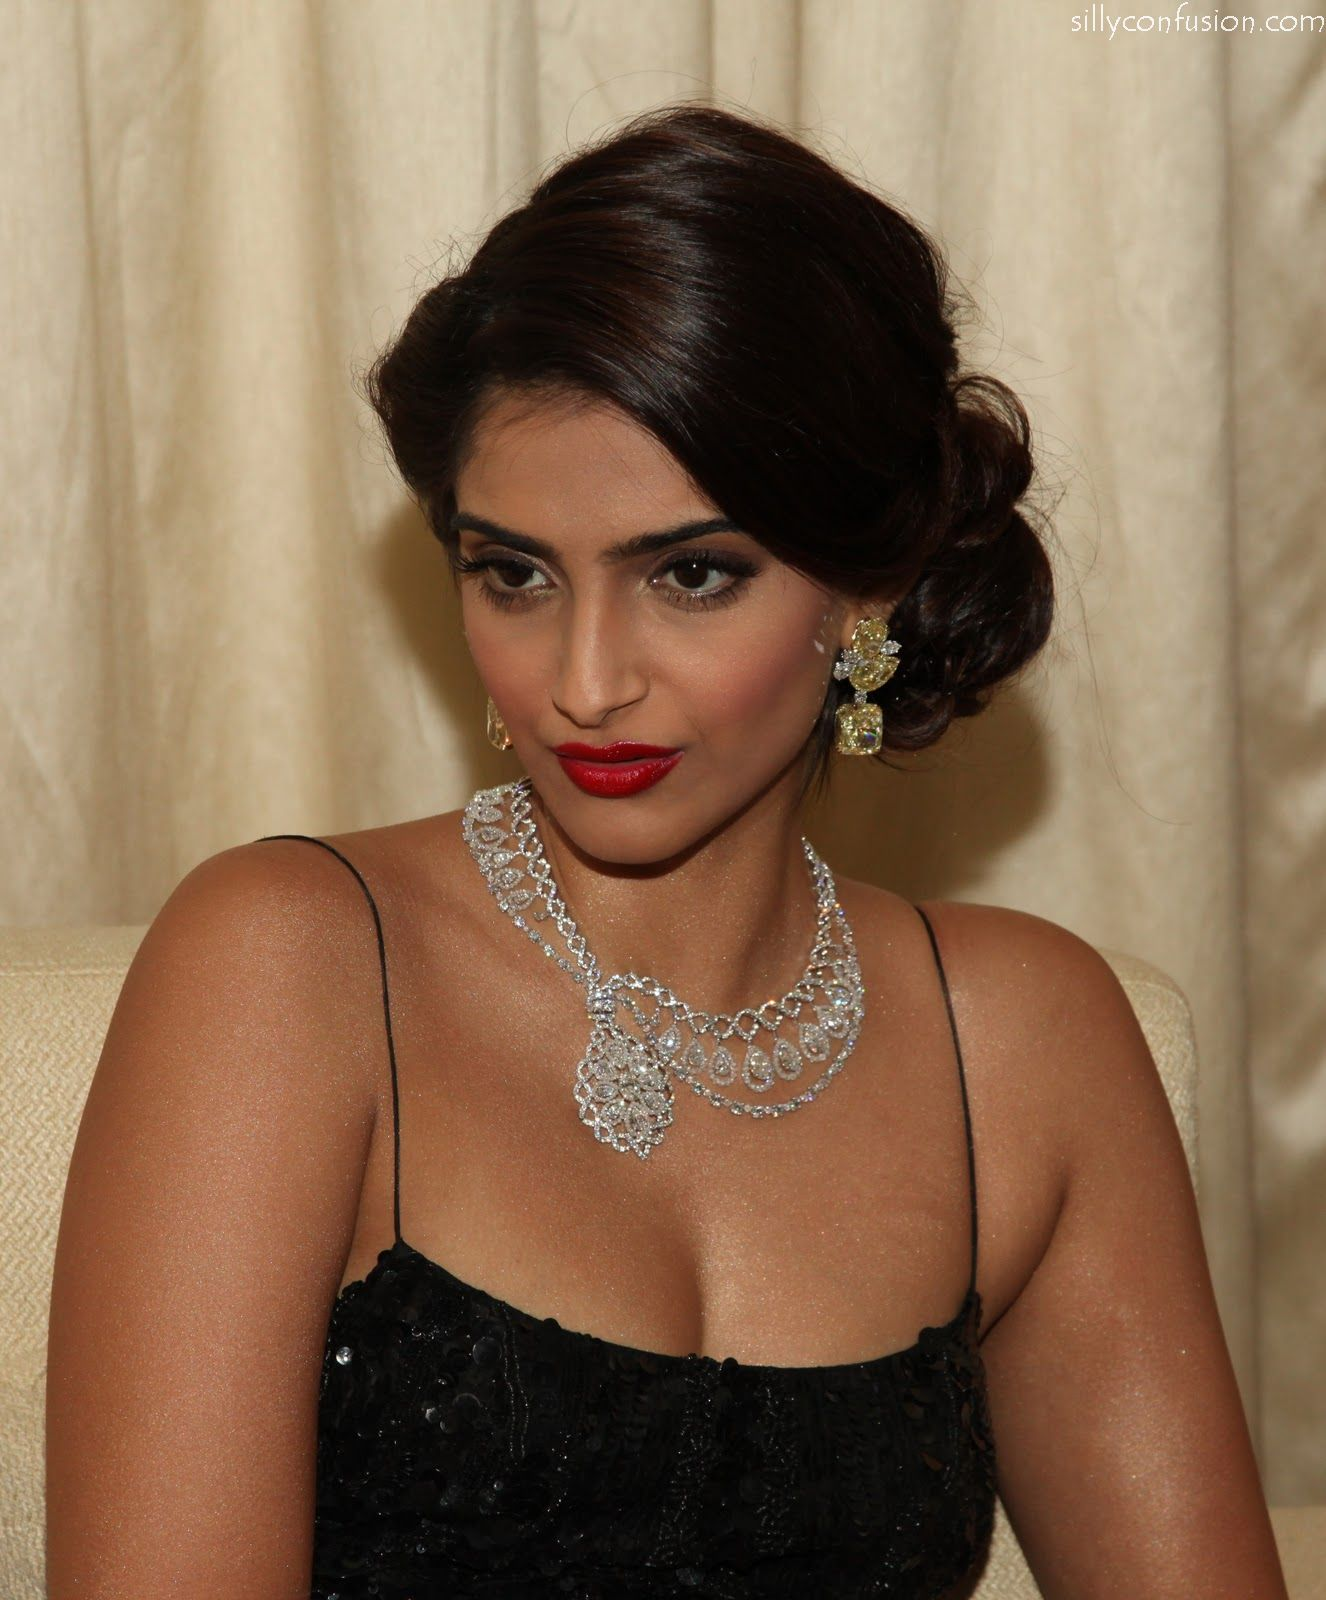 Sonam Kapoor The Actress Accessorised Her Couture Gown With Traditional Gold Jhumkas